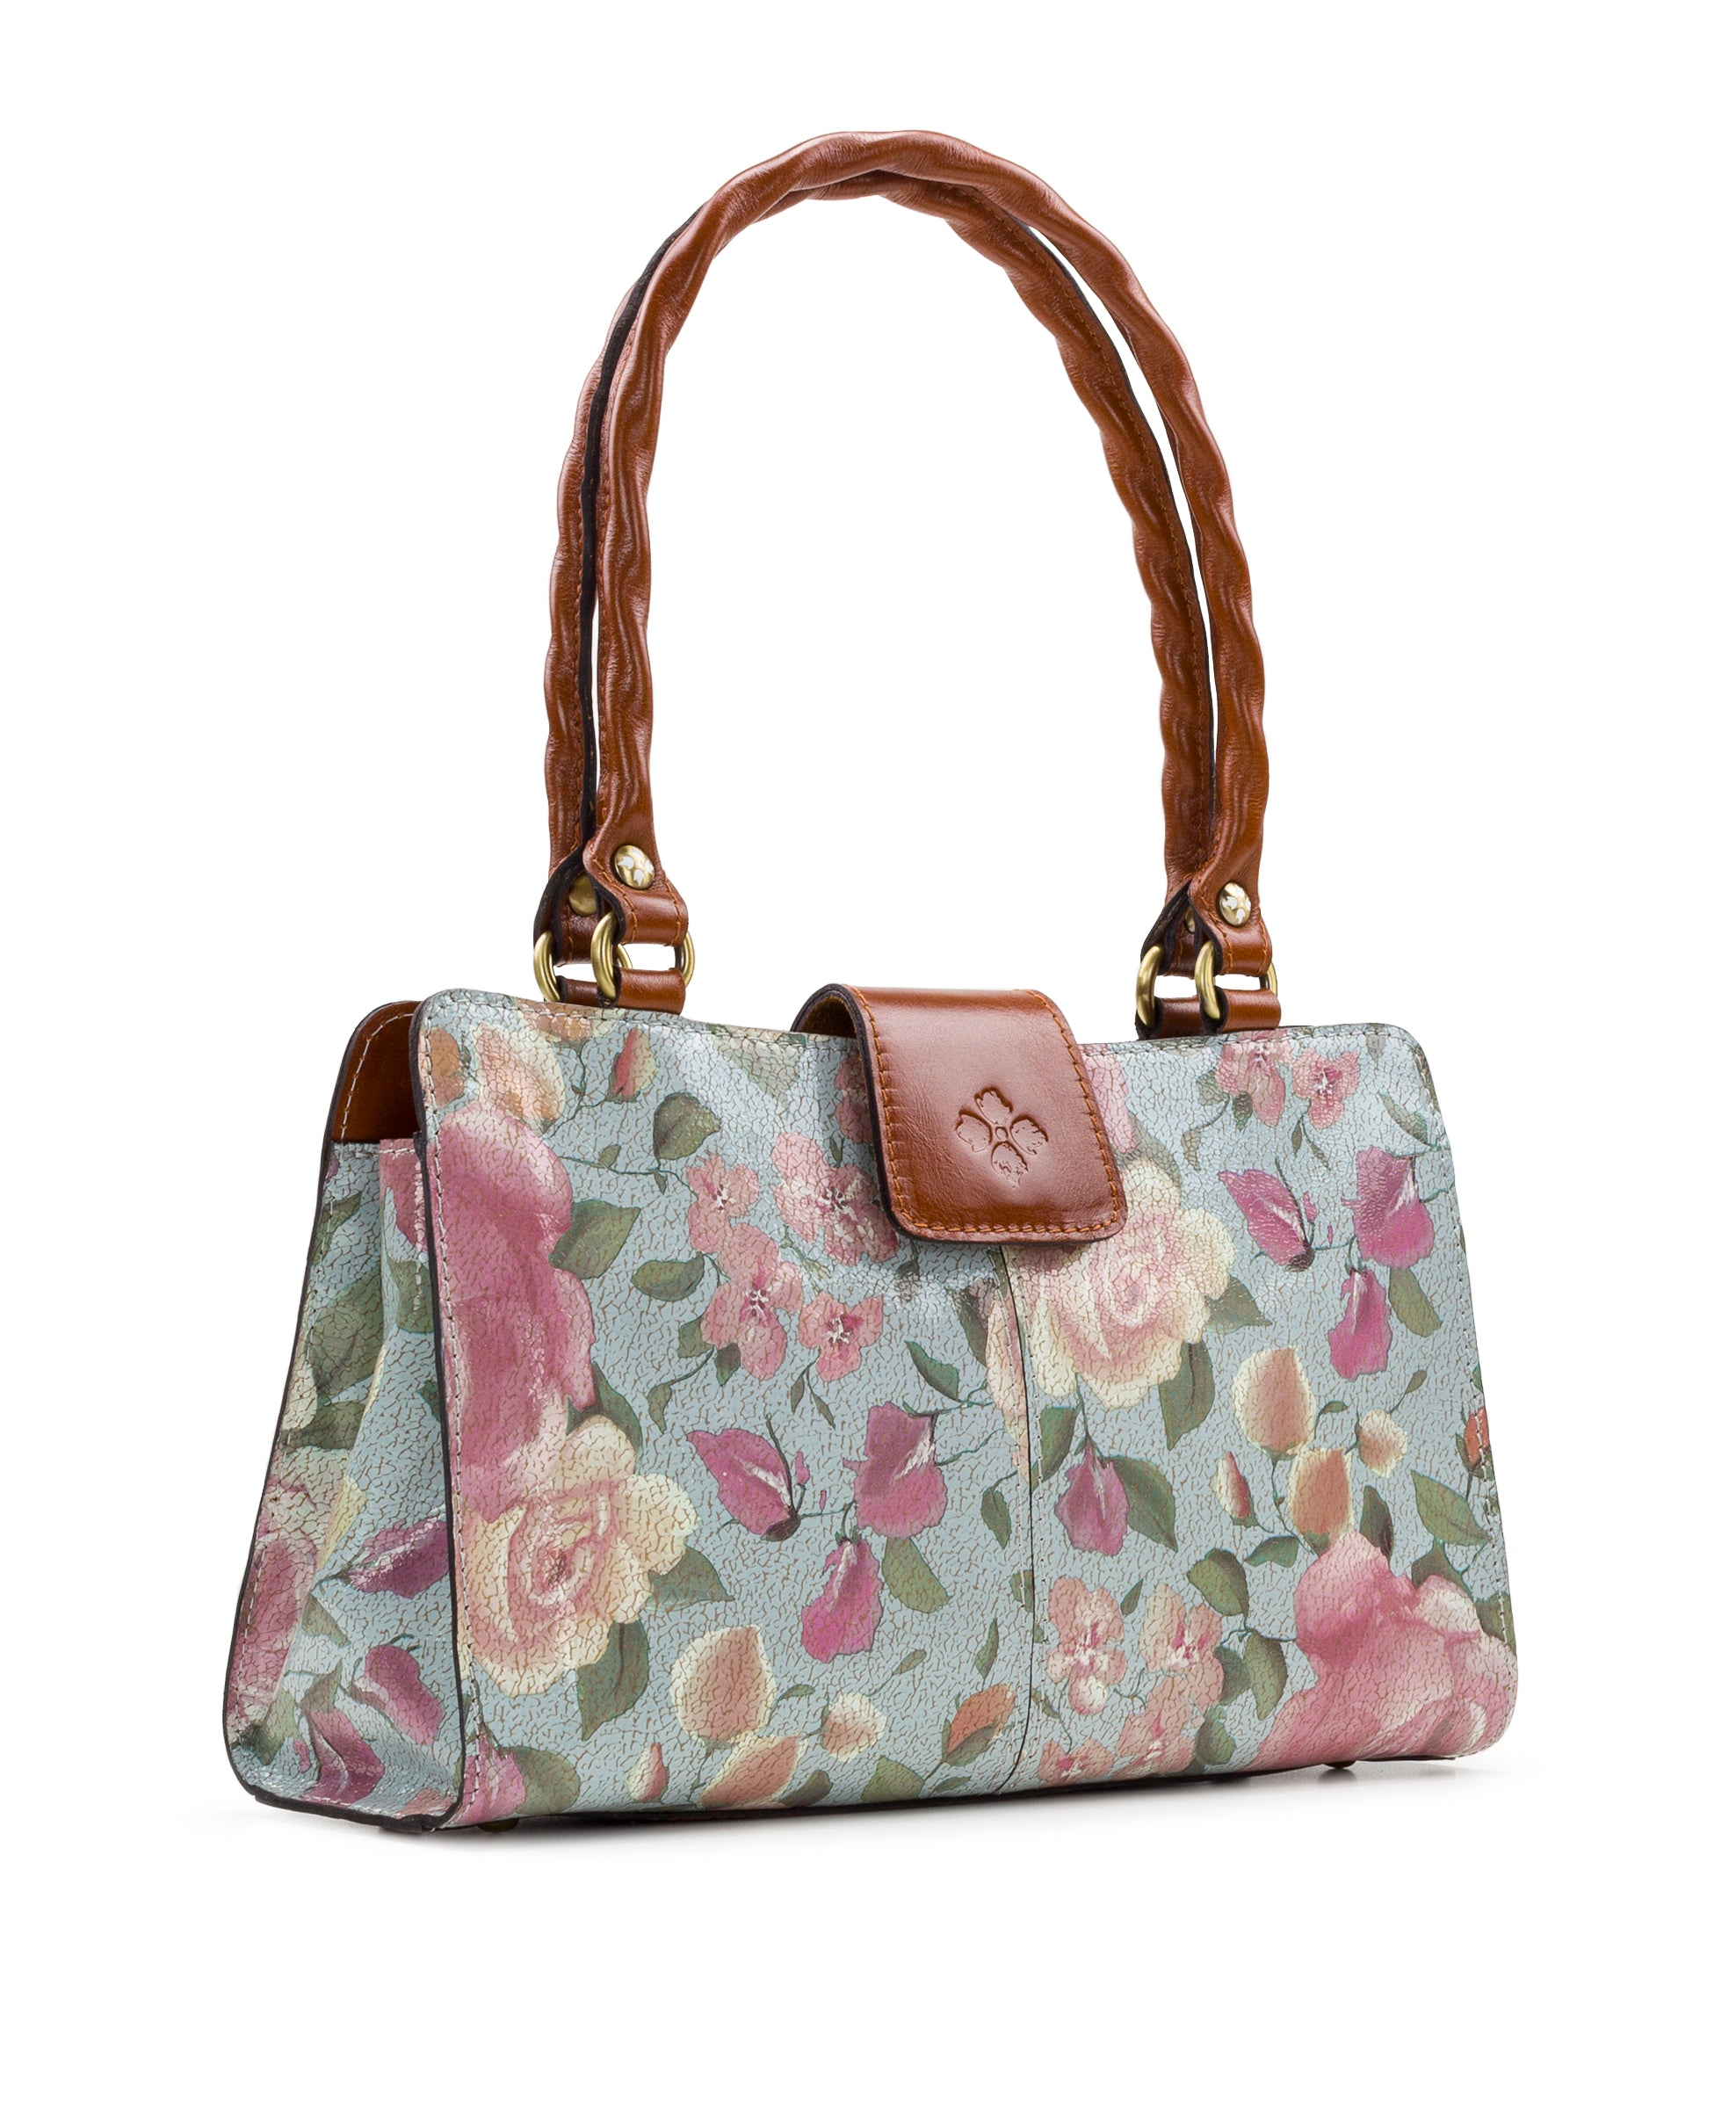 Rienzo Satchel - Crackled Rose - Rienzo Satchel - Crackled Rose